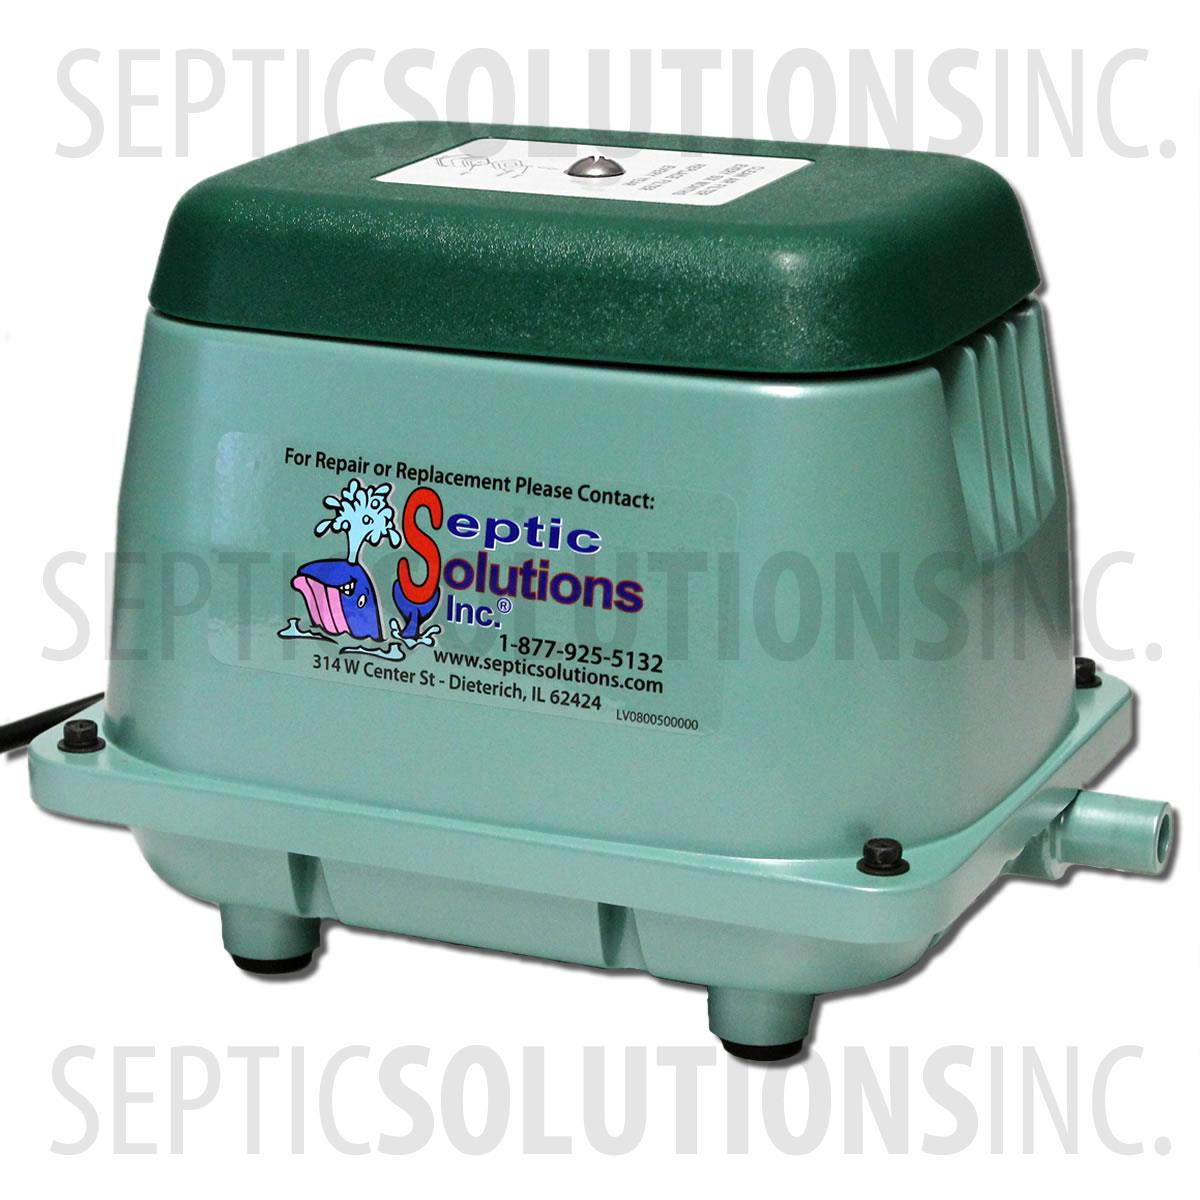 AS500_1?w=600 aqua safe aerobic septic system air pumps and repair parts  at crackthecode.co